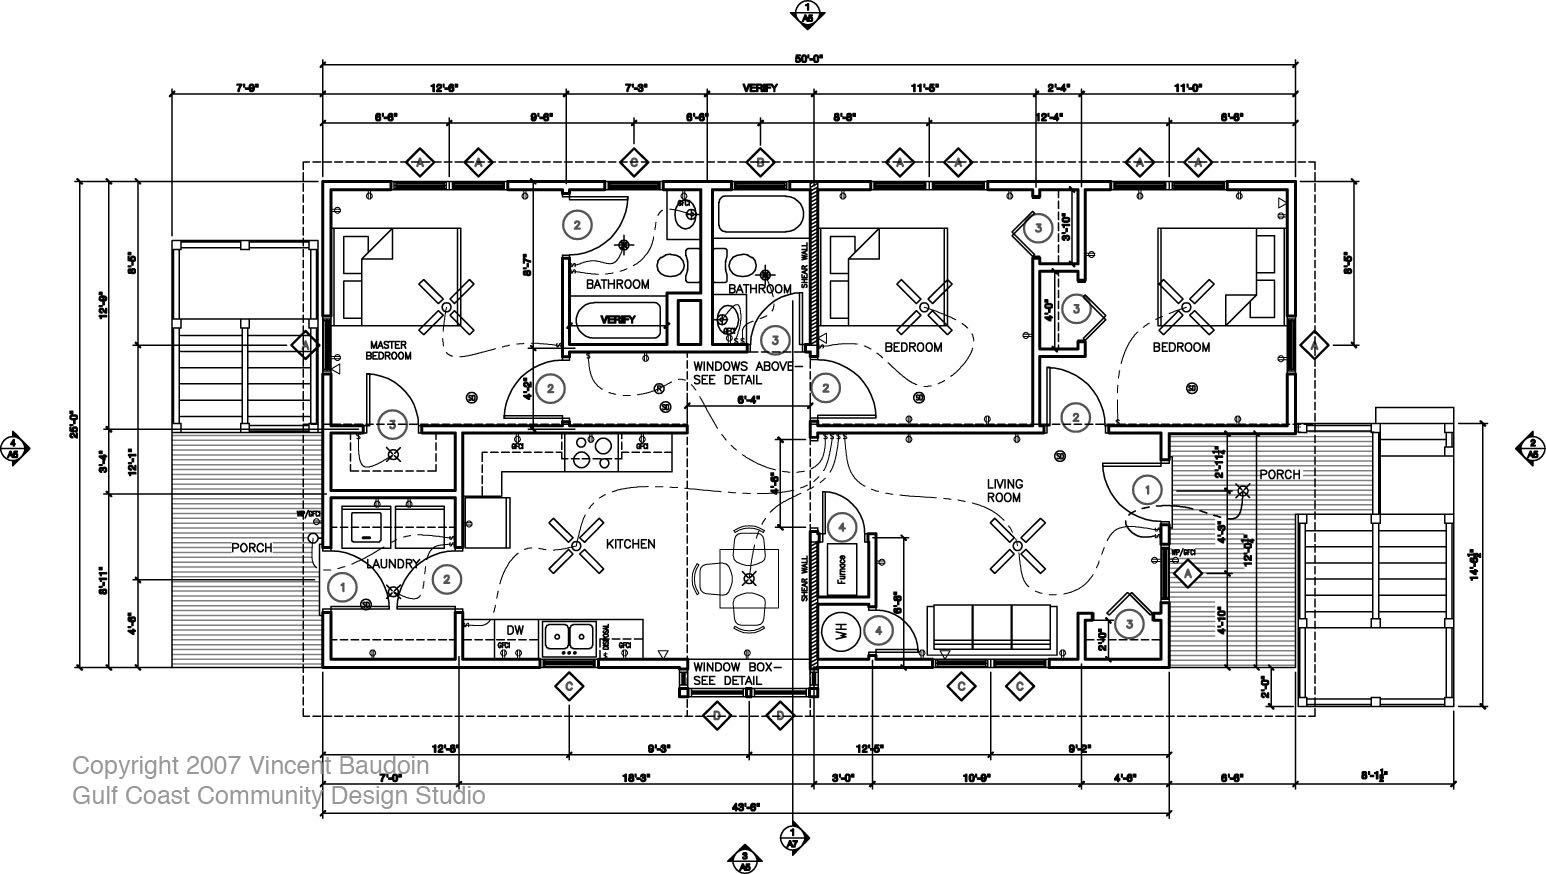 House building plans house ideals for Home construction plans